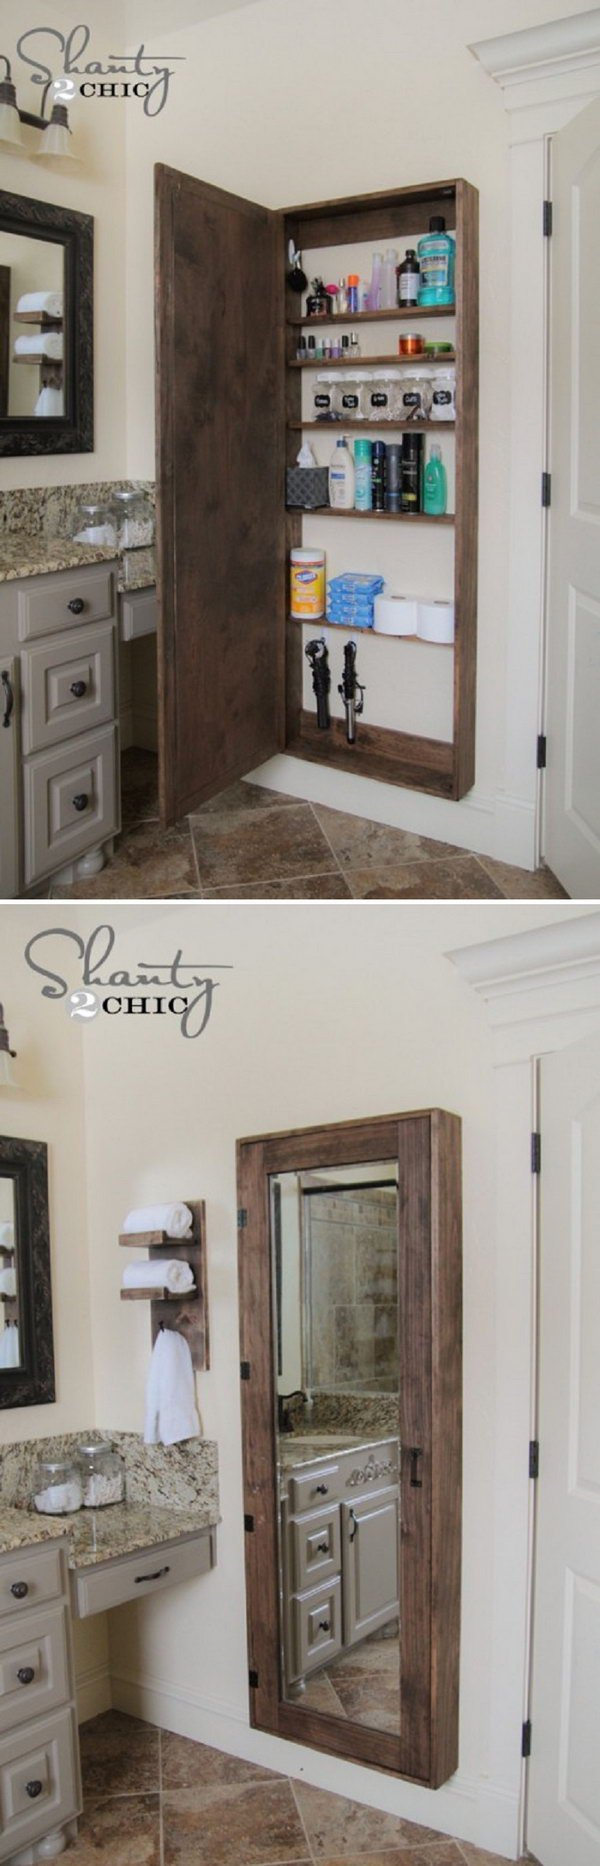 A Big Bathroom Storage Case Behind the Mirror.